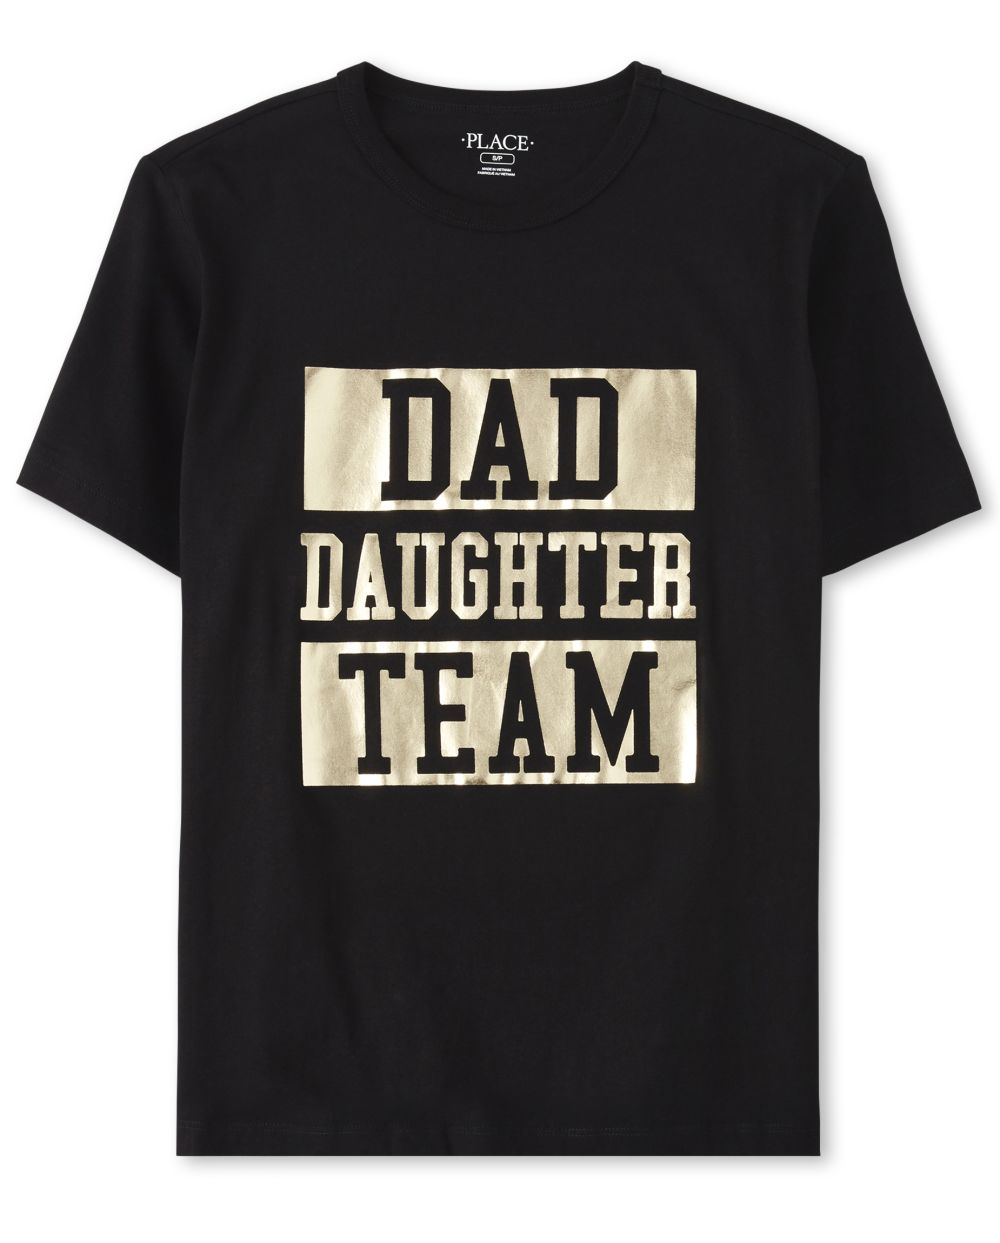 Mens Matching Family Foil Team Graphic Tee